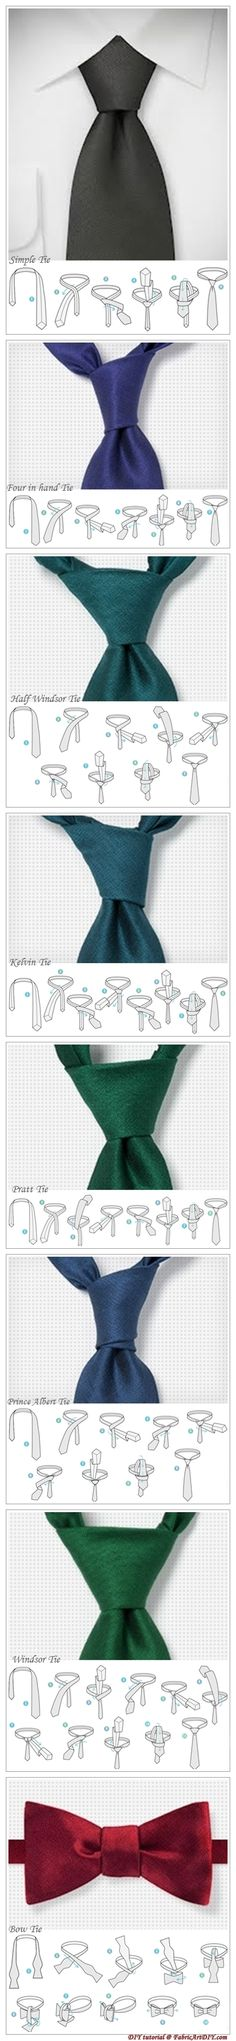 Classic tie knot instructions